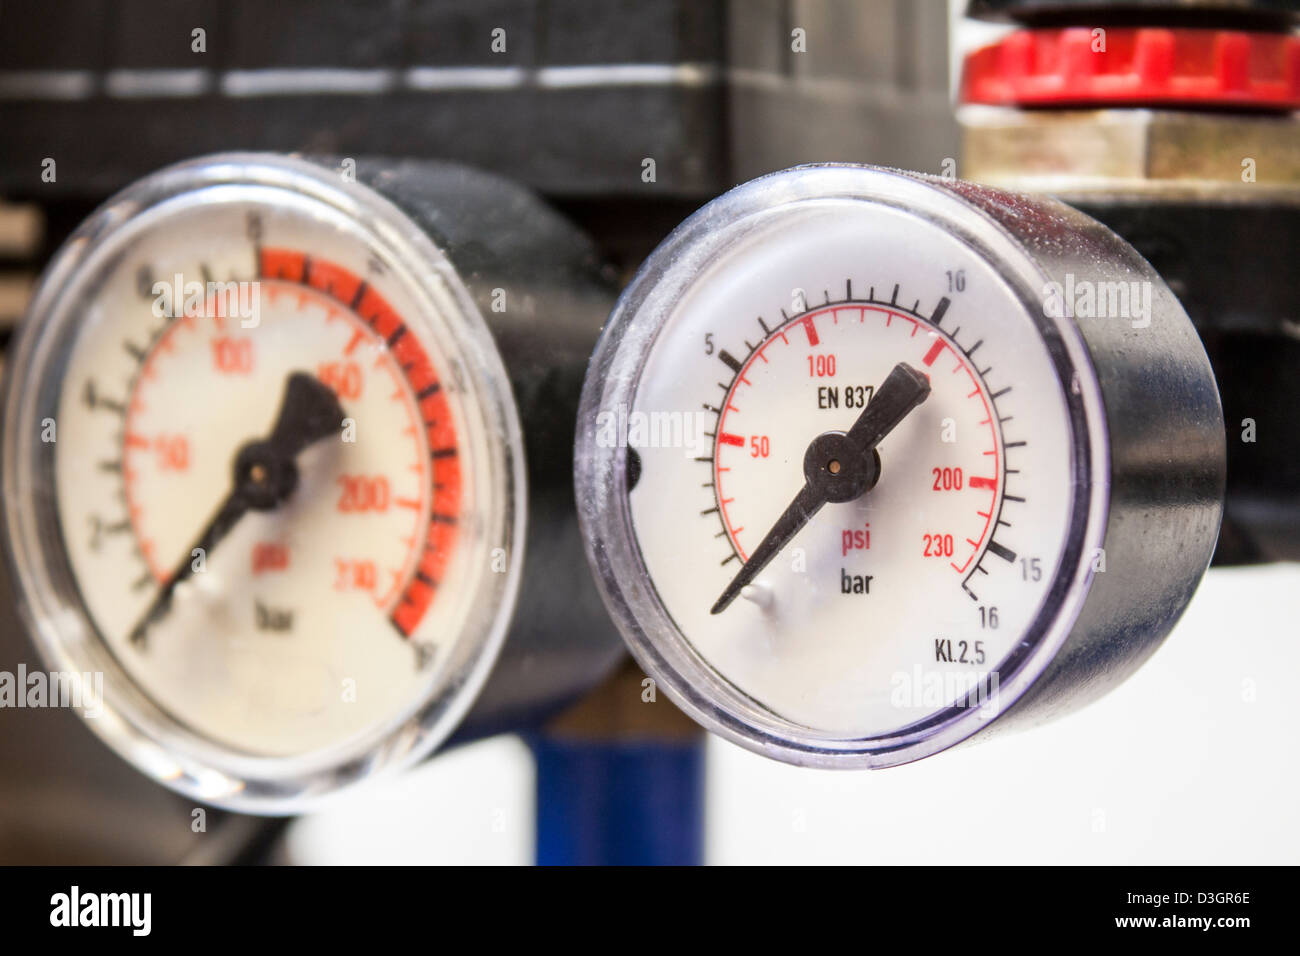 industrial barometer in blue air compressors,white background - Stock Image